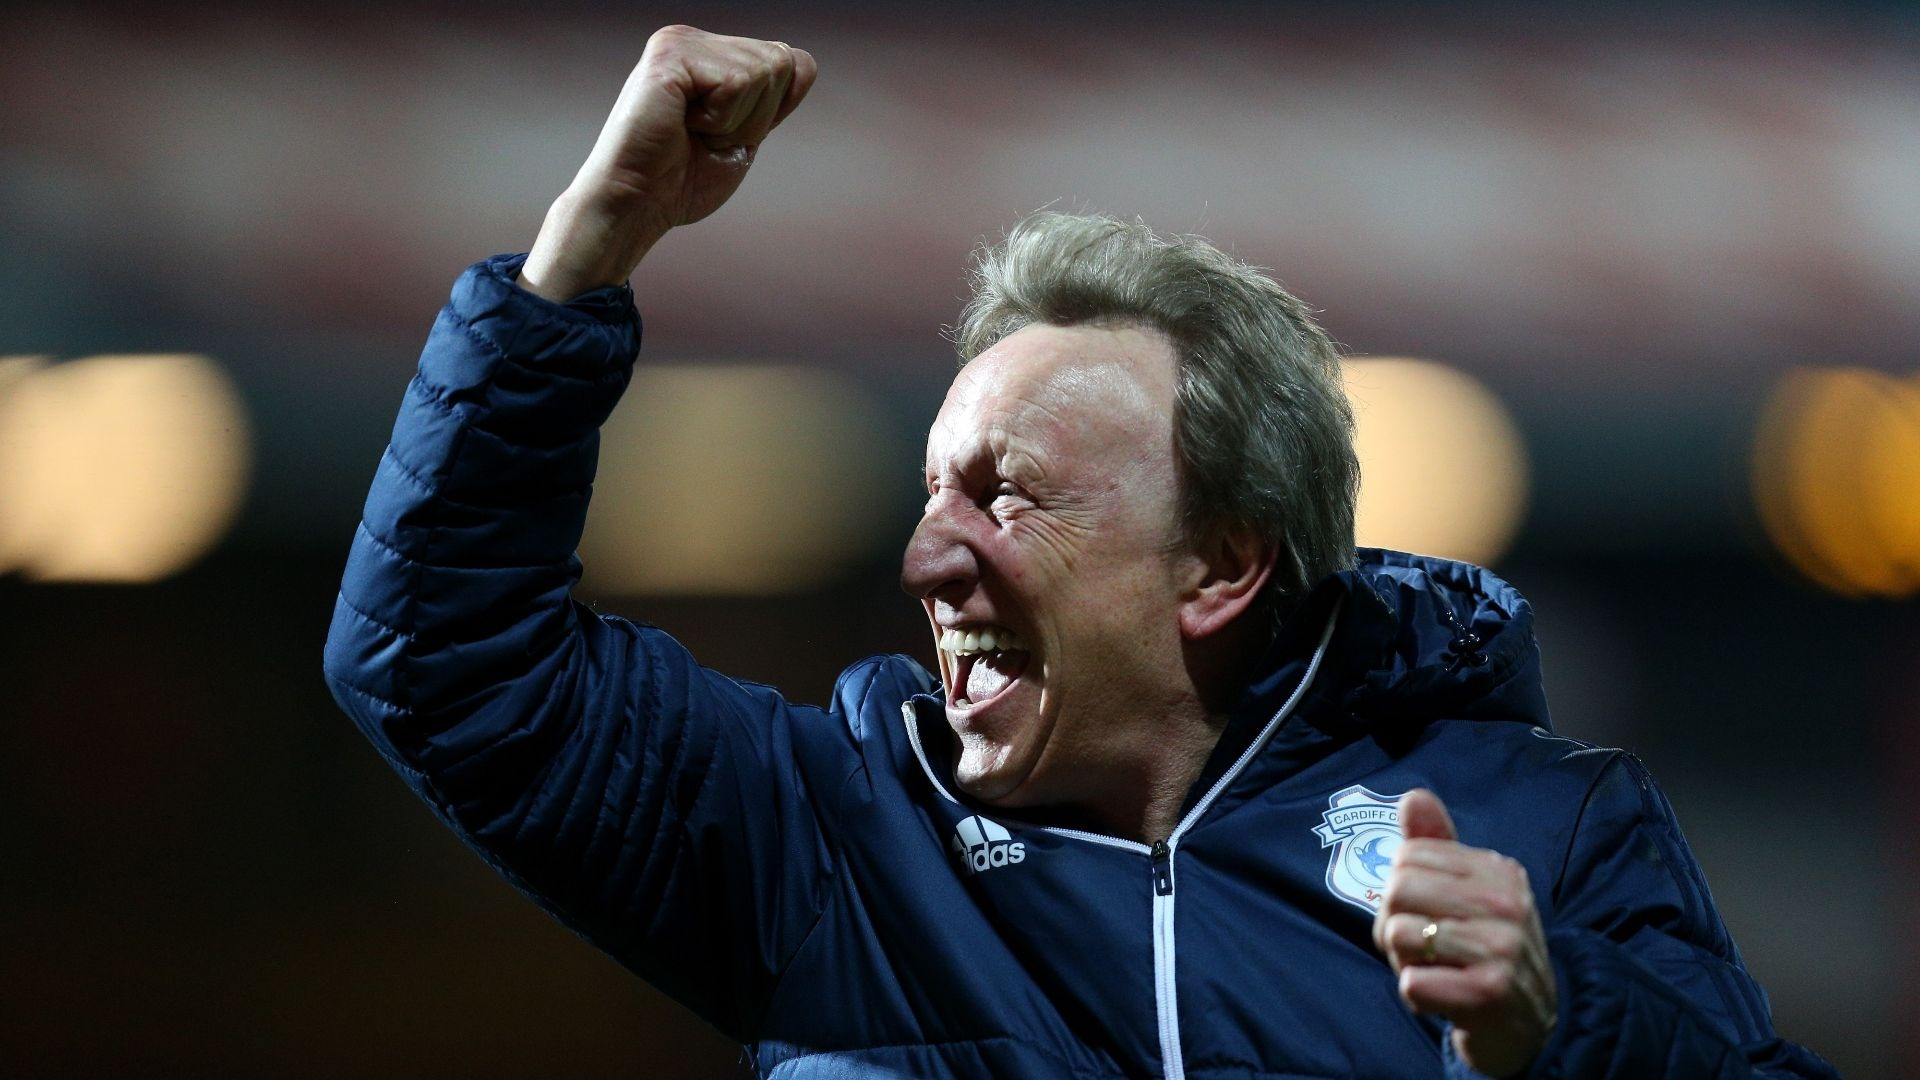 Neil Warnock during the Sky Bet Championship match between Brentford and Cardiff City at Griffin Park on March 13, 2018 in Brentford, England.